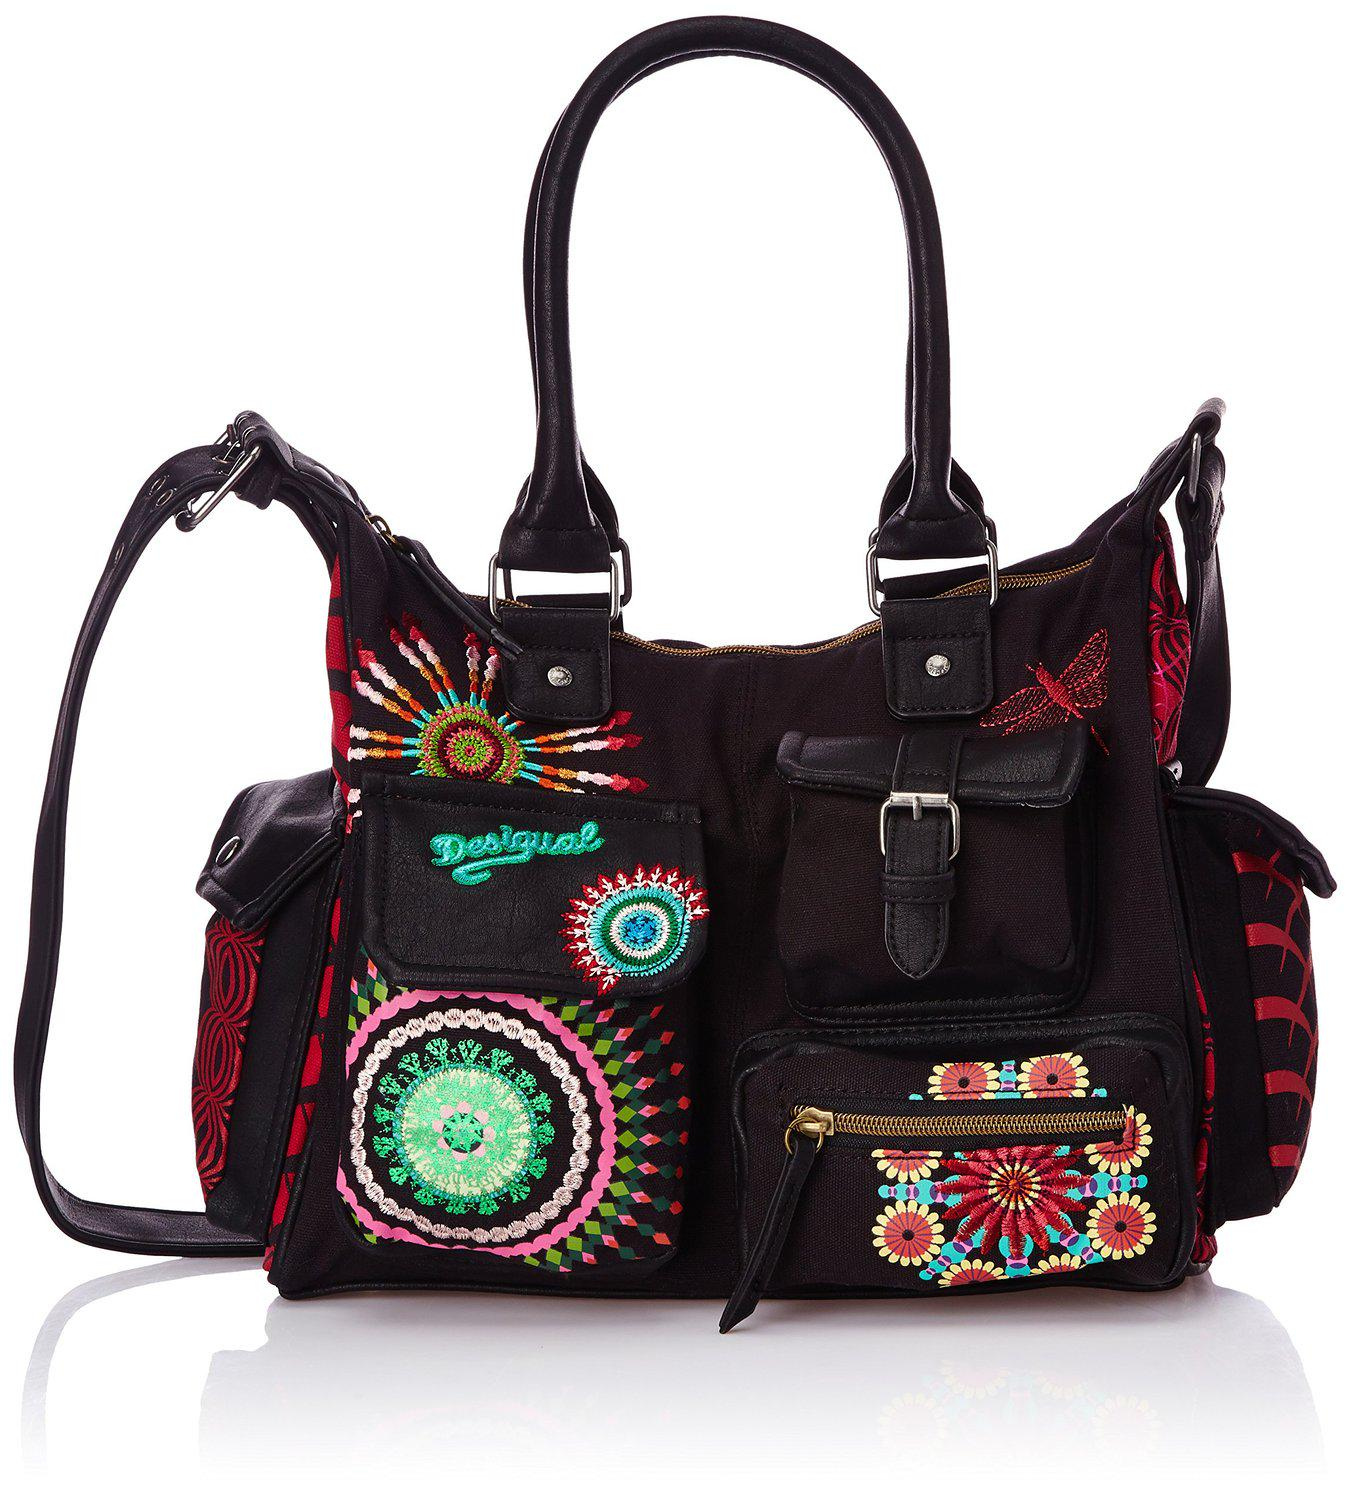 women 39 s bargains uk on twitter last 5 in stock desigual eclipse bag was 64 now 32 at house. Black Bedroom Furniture Sets. Home Design Ideas